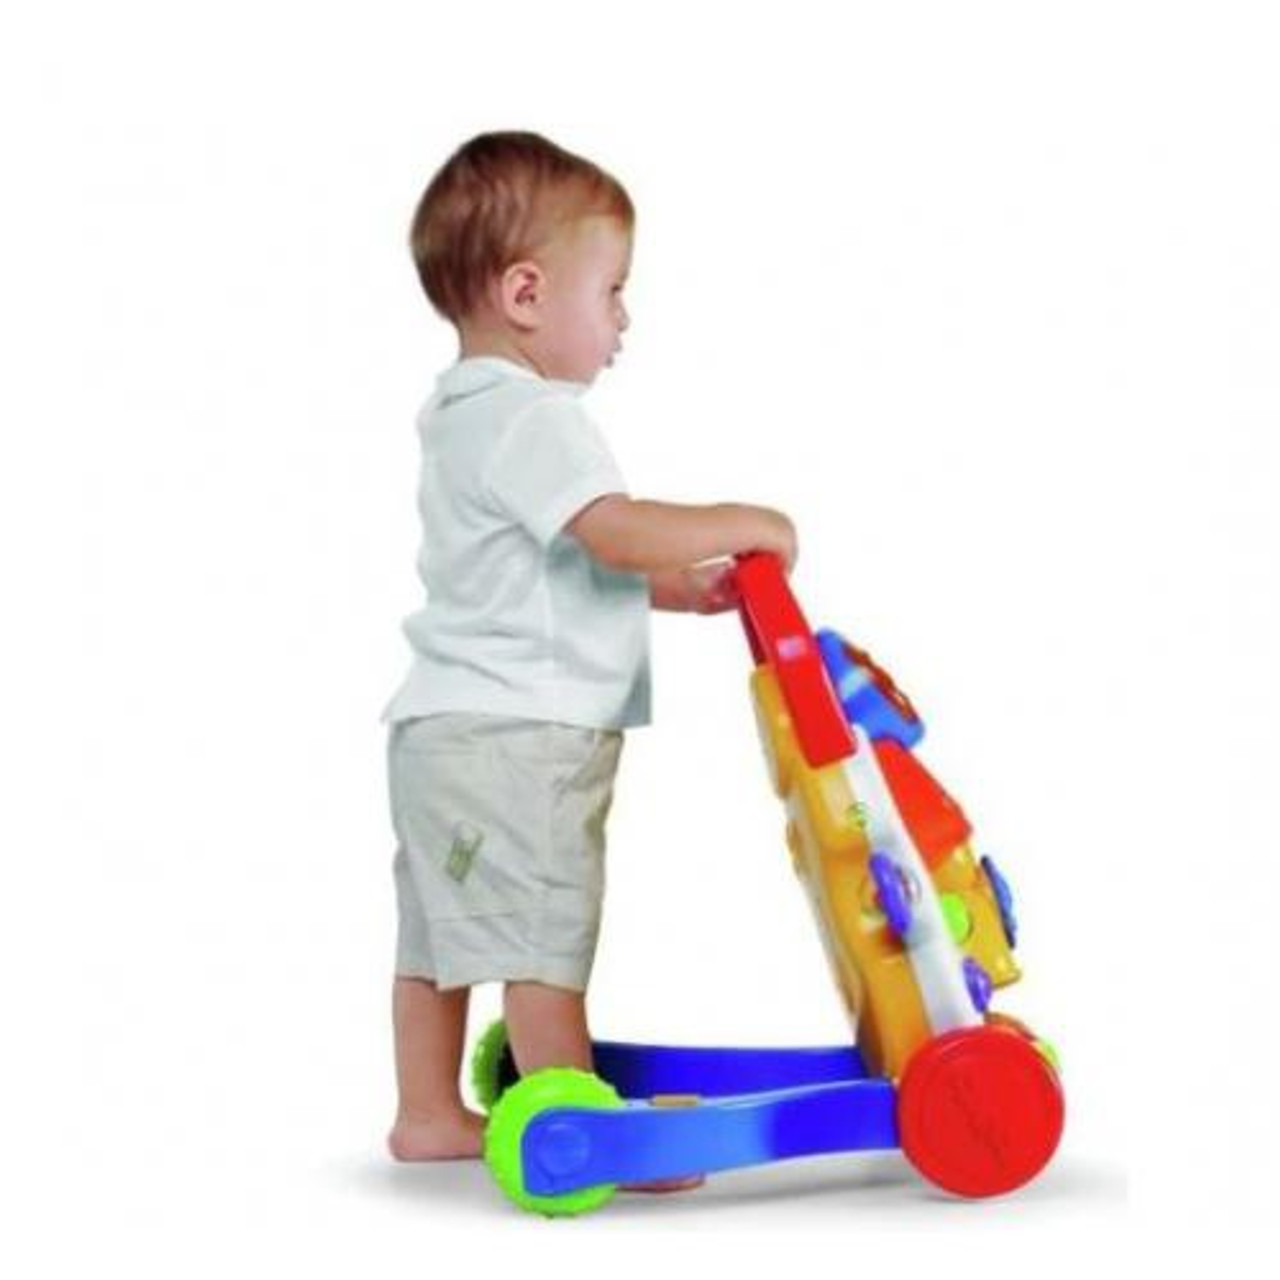 Chicco Baby Steps Activity Walker at Baby Barn Discounts Train your little one to take their first steps while also encouraging interactive play with the Chicco Baby Steps Activity Walker.